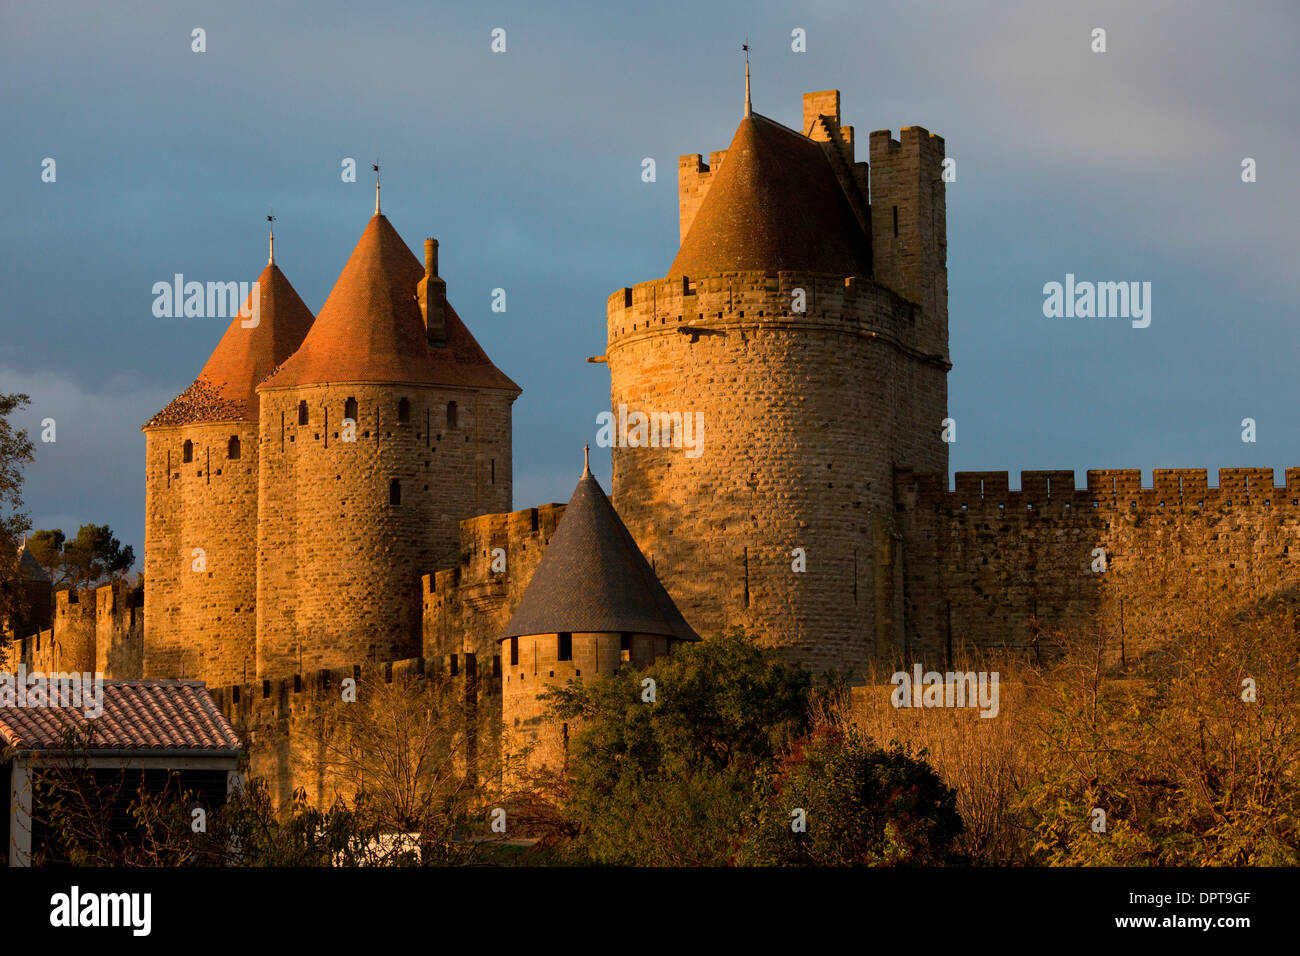 The medieval fortifications of the ancient citadel of Carcassonne, south-west France, early morning - Stock Image